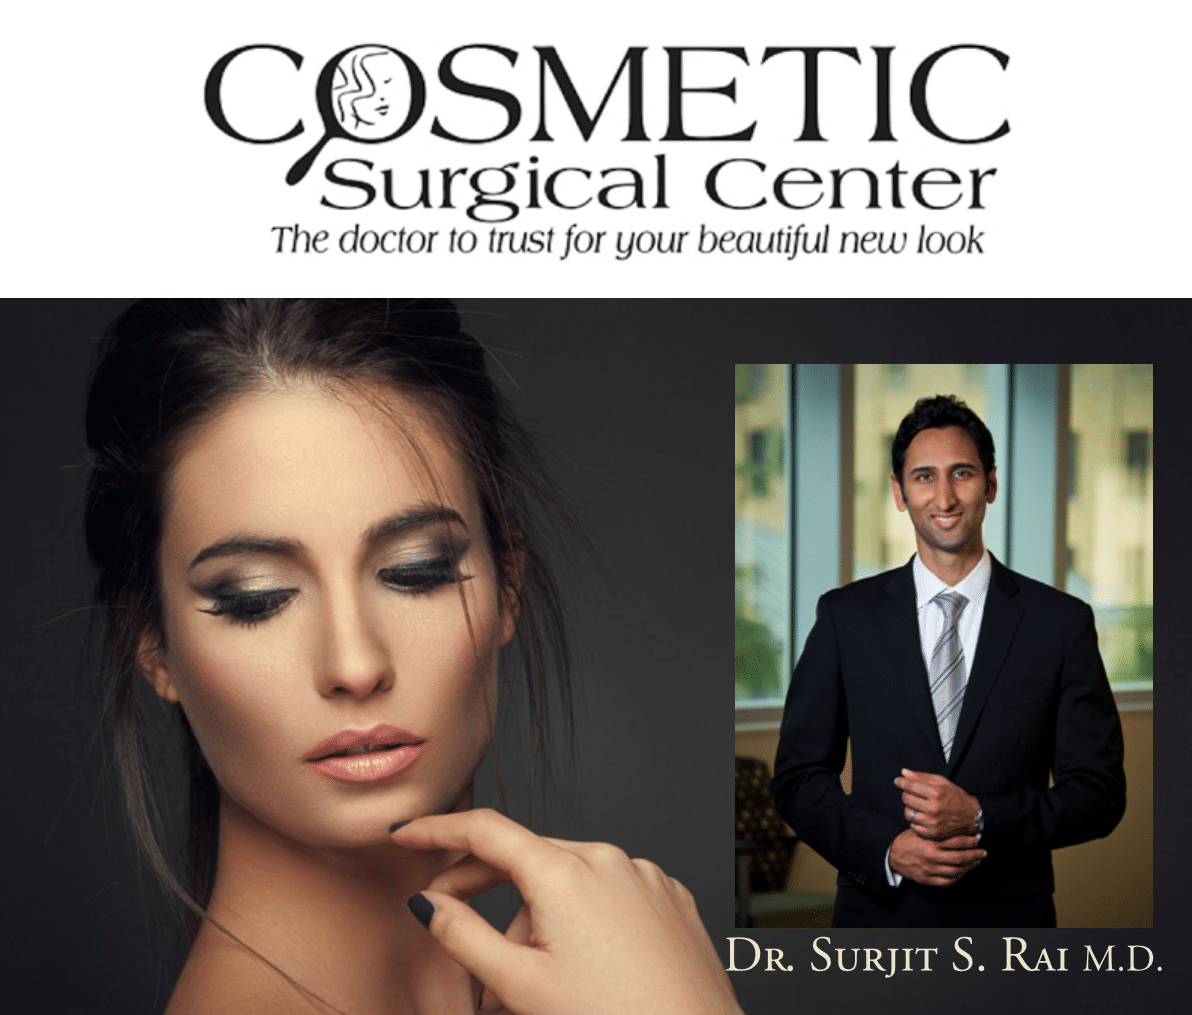 Cosmetic Surgical Center